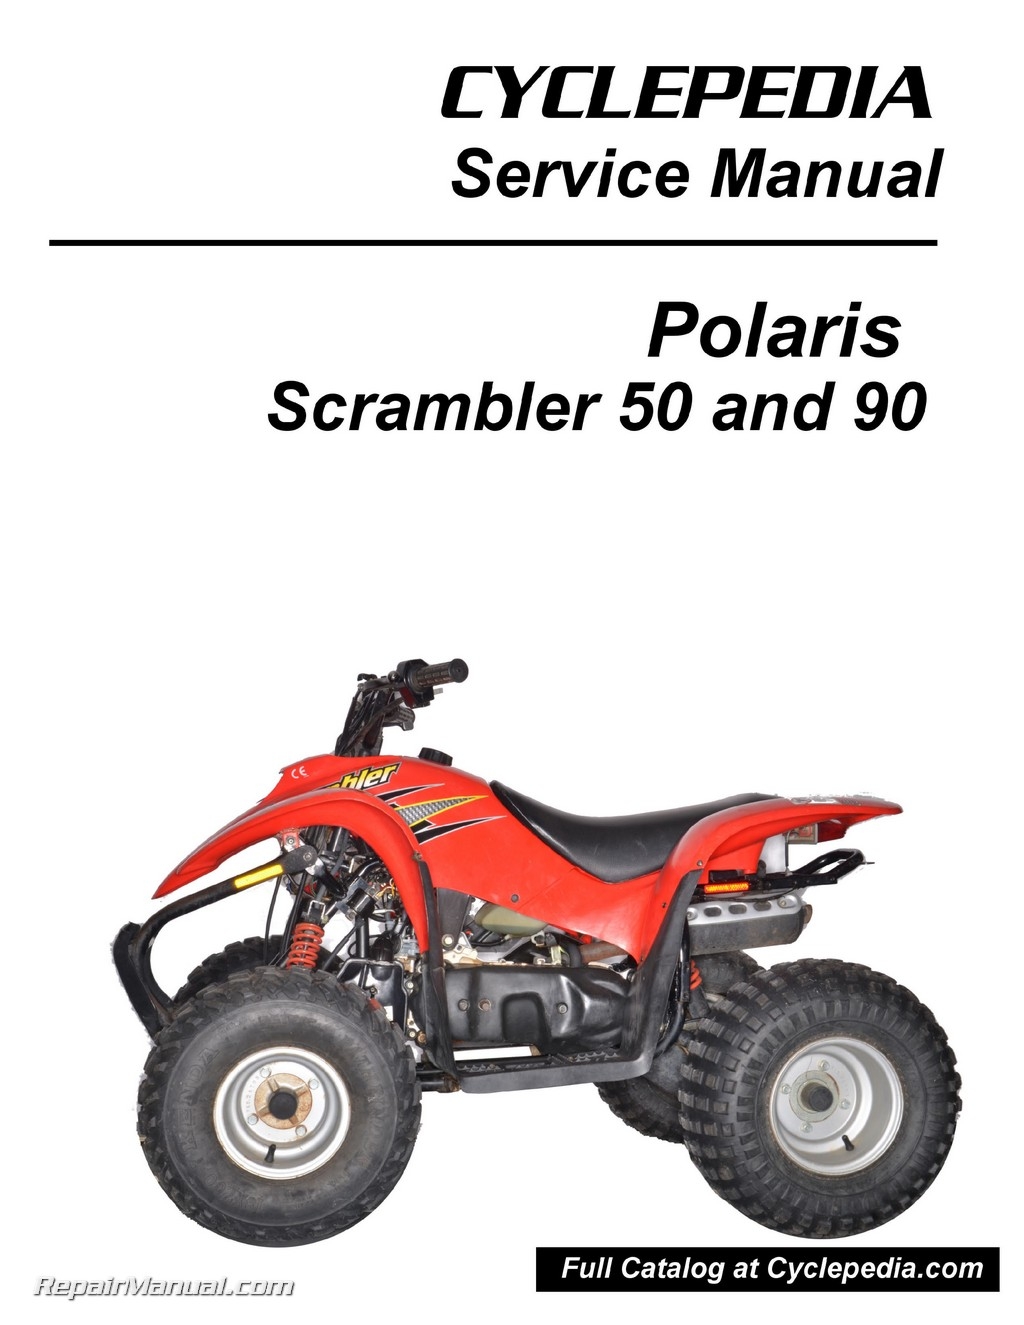 polaris xplorer 400 manual ebook rh polaris xplorer 400 manual ebook tempower us 1998 polaris xplorer 400 4x4 repair manual 1998 Polaris Explorer 400 Manual